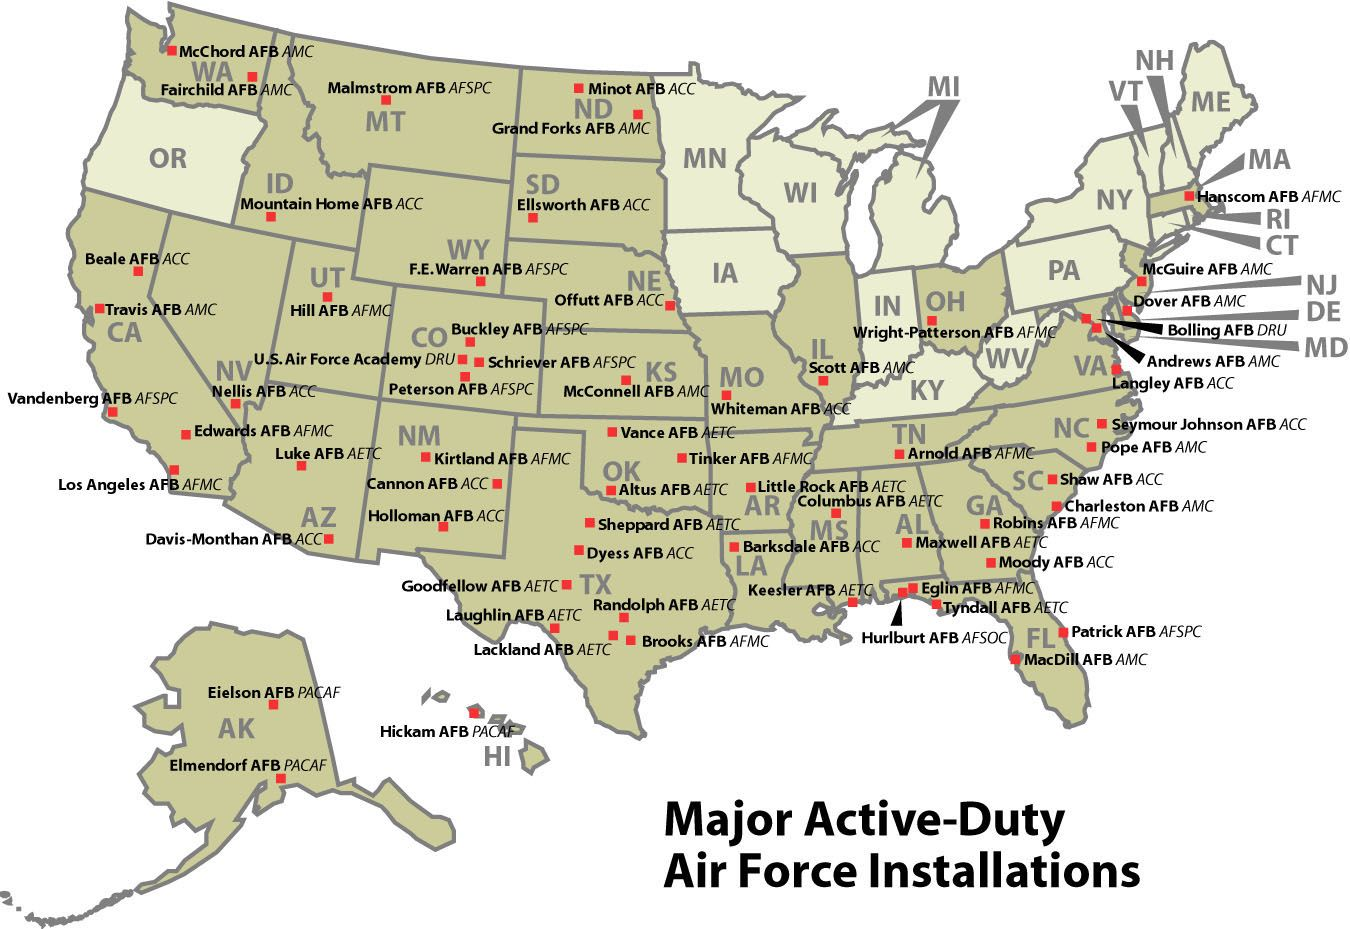 Map Of Air Force Bases In United States Exactly What I Need For - Map of us air force installations